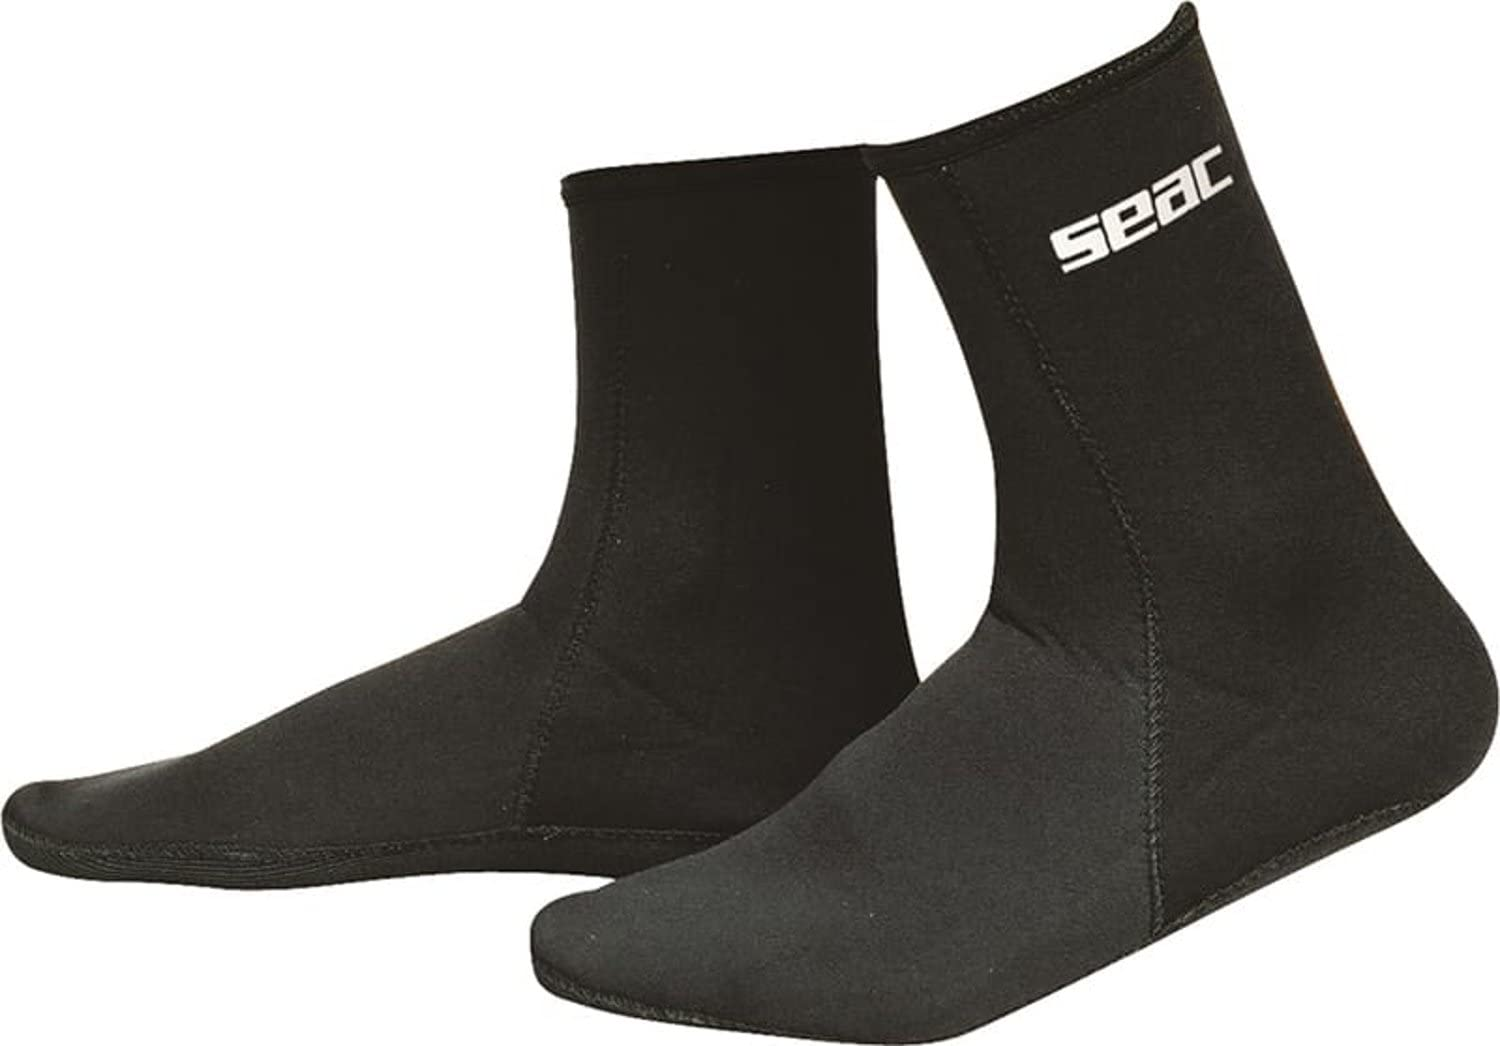 Seac Max 78% OFF Standard Boots National uniform free shipping 2.5mm